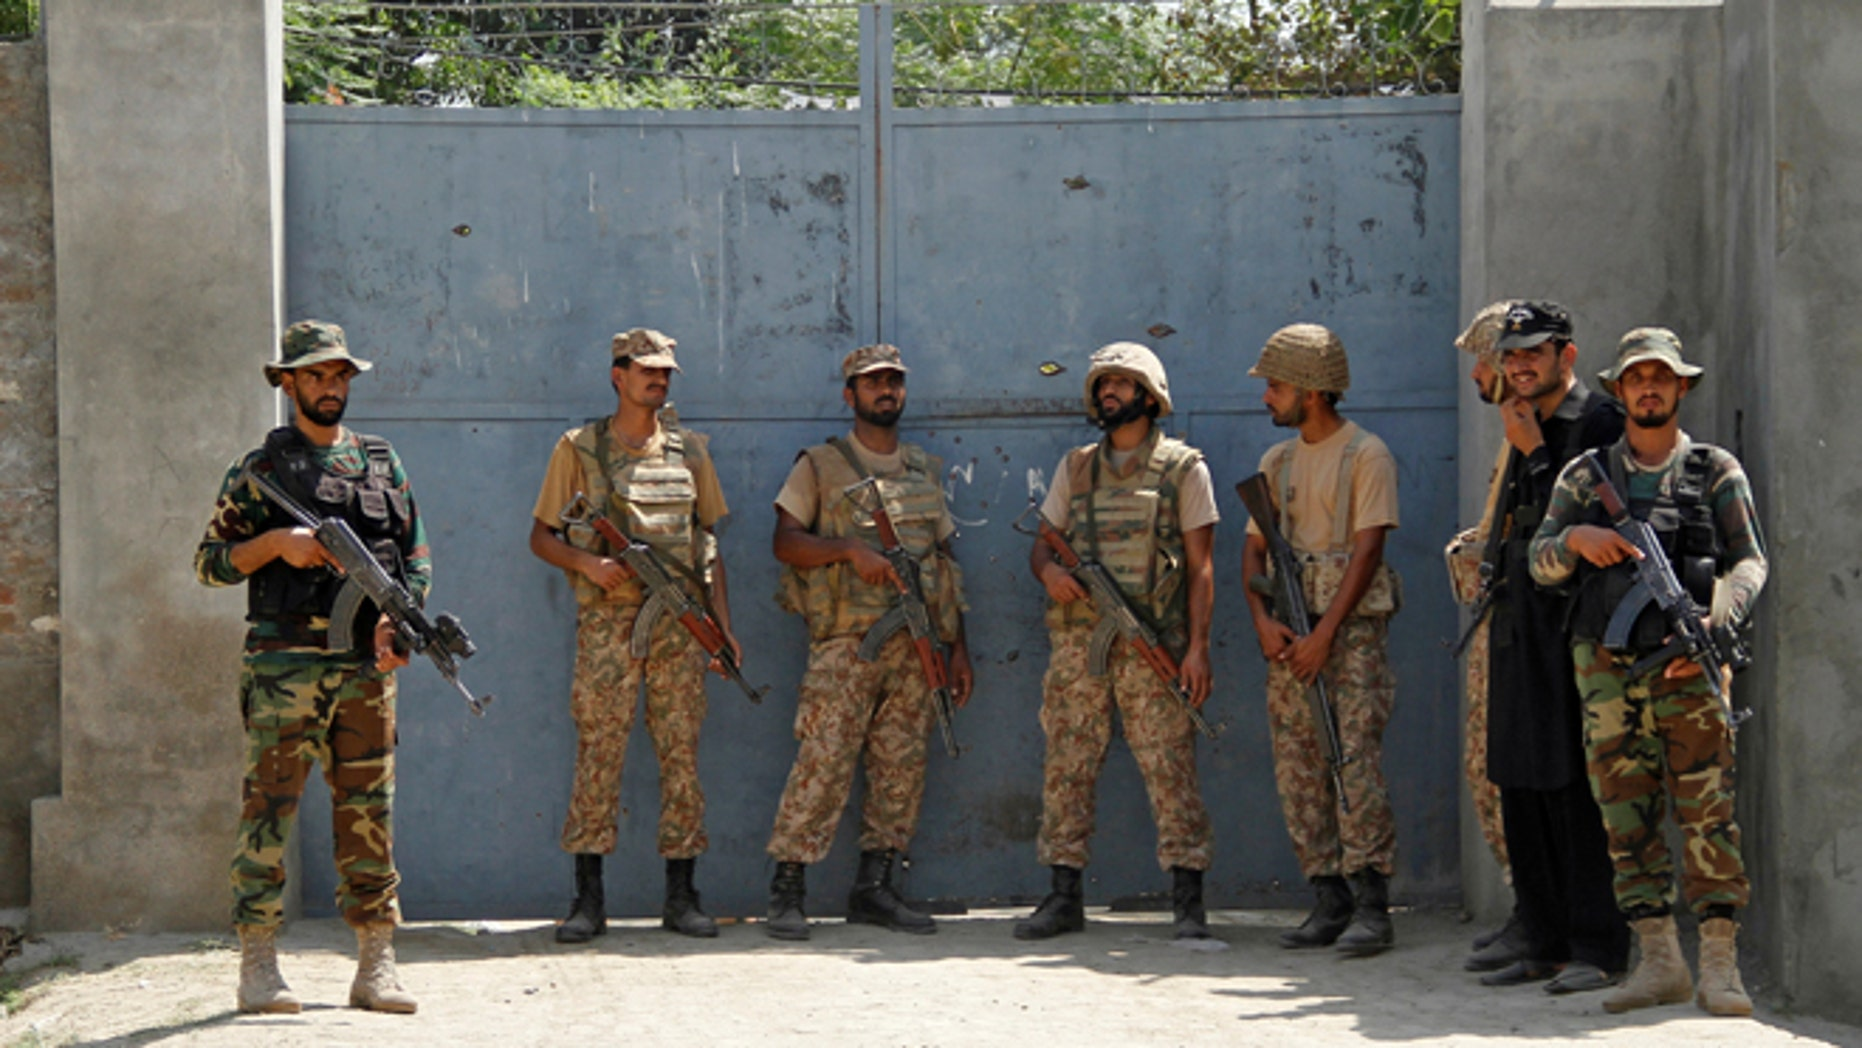 Pakistan Army soldiers stand guard at an entrance gate, after suicide bombers attacked a Christian neighborhood in Khyber Agency near Peshawar, Pakistan, September 2, 2016.